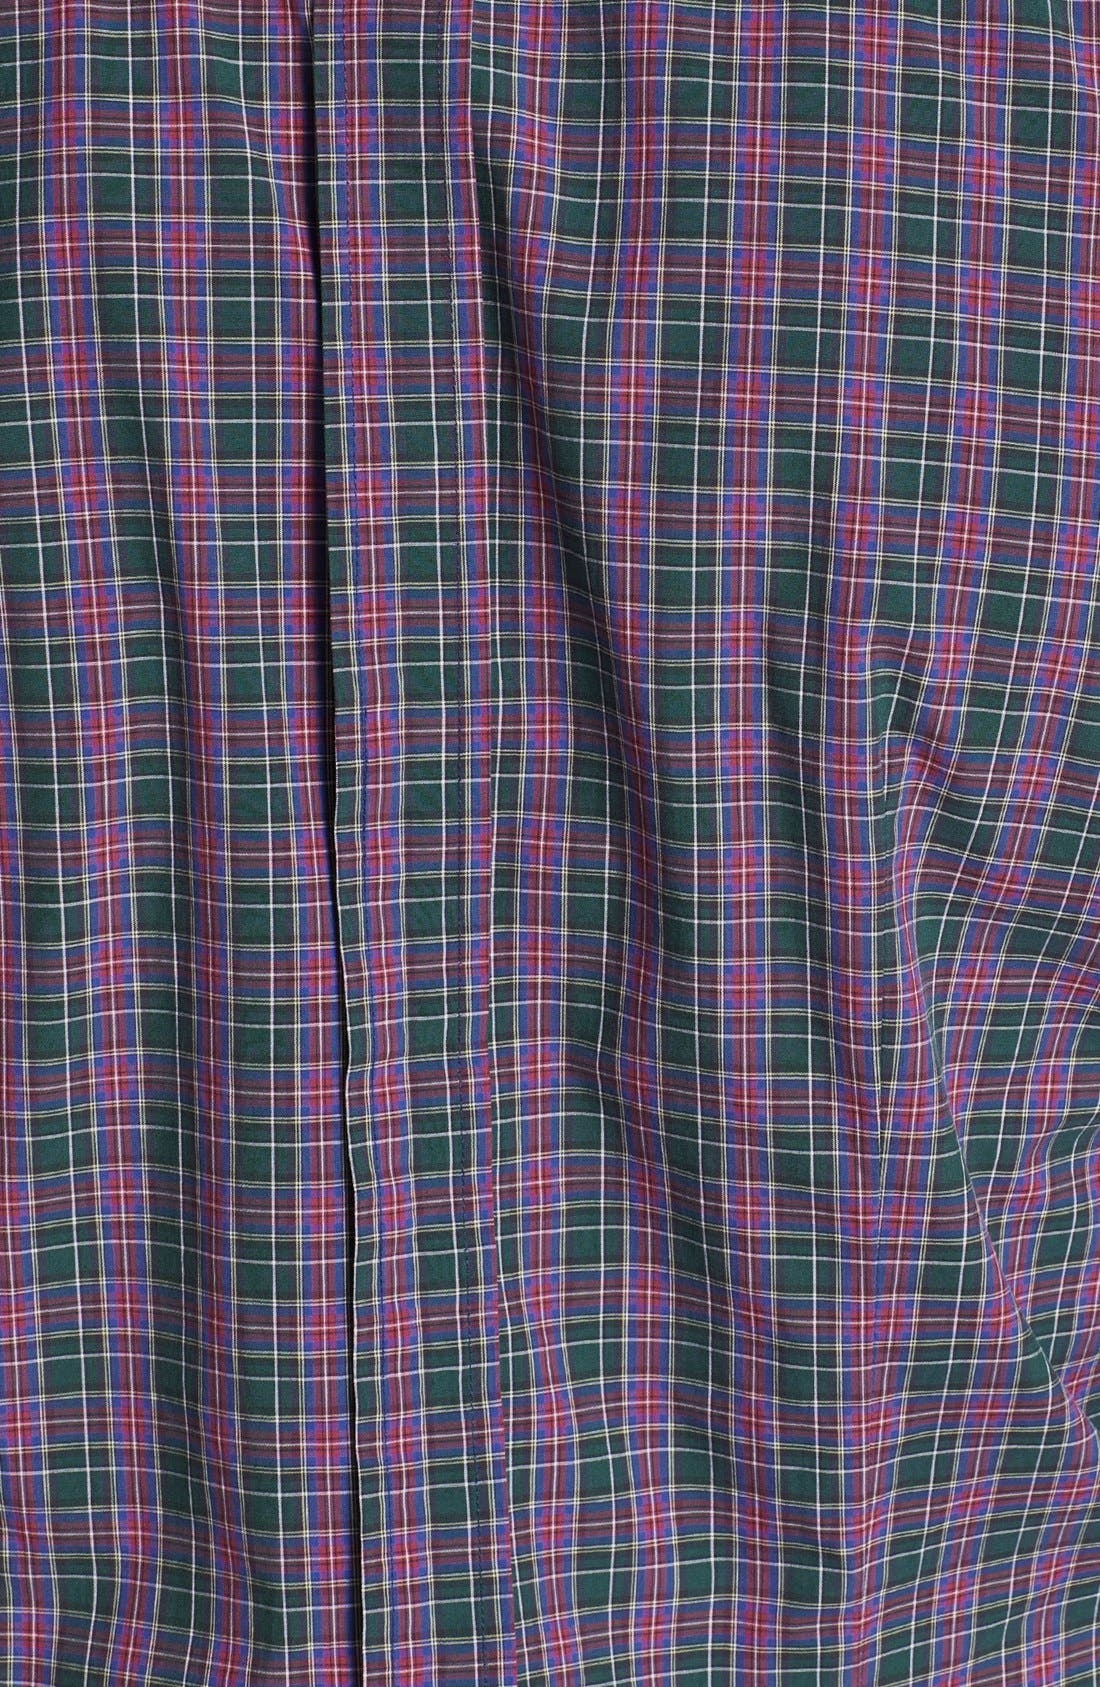 Alternate Image 3  - Band of Outsiders 'Ranger' Plaid Cotton Shirt